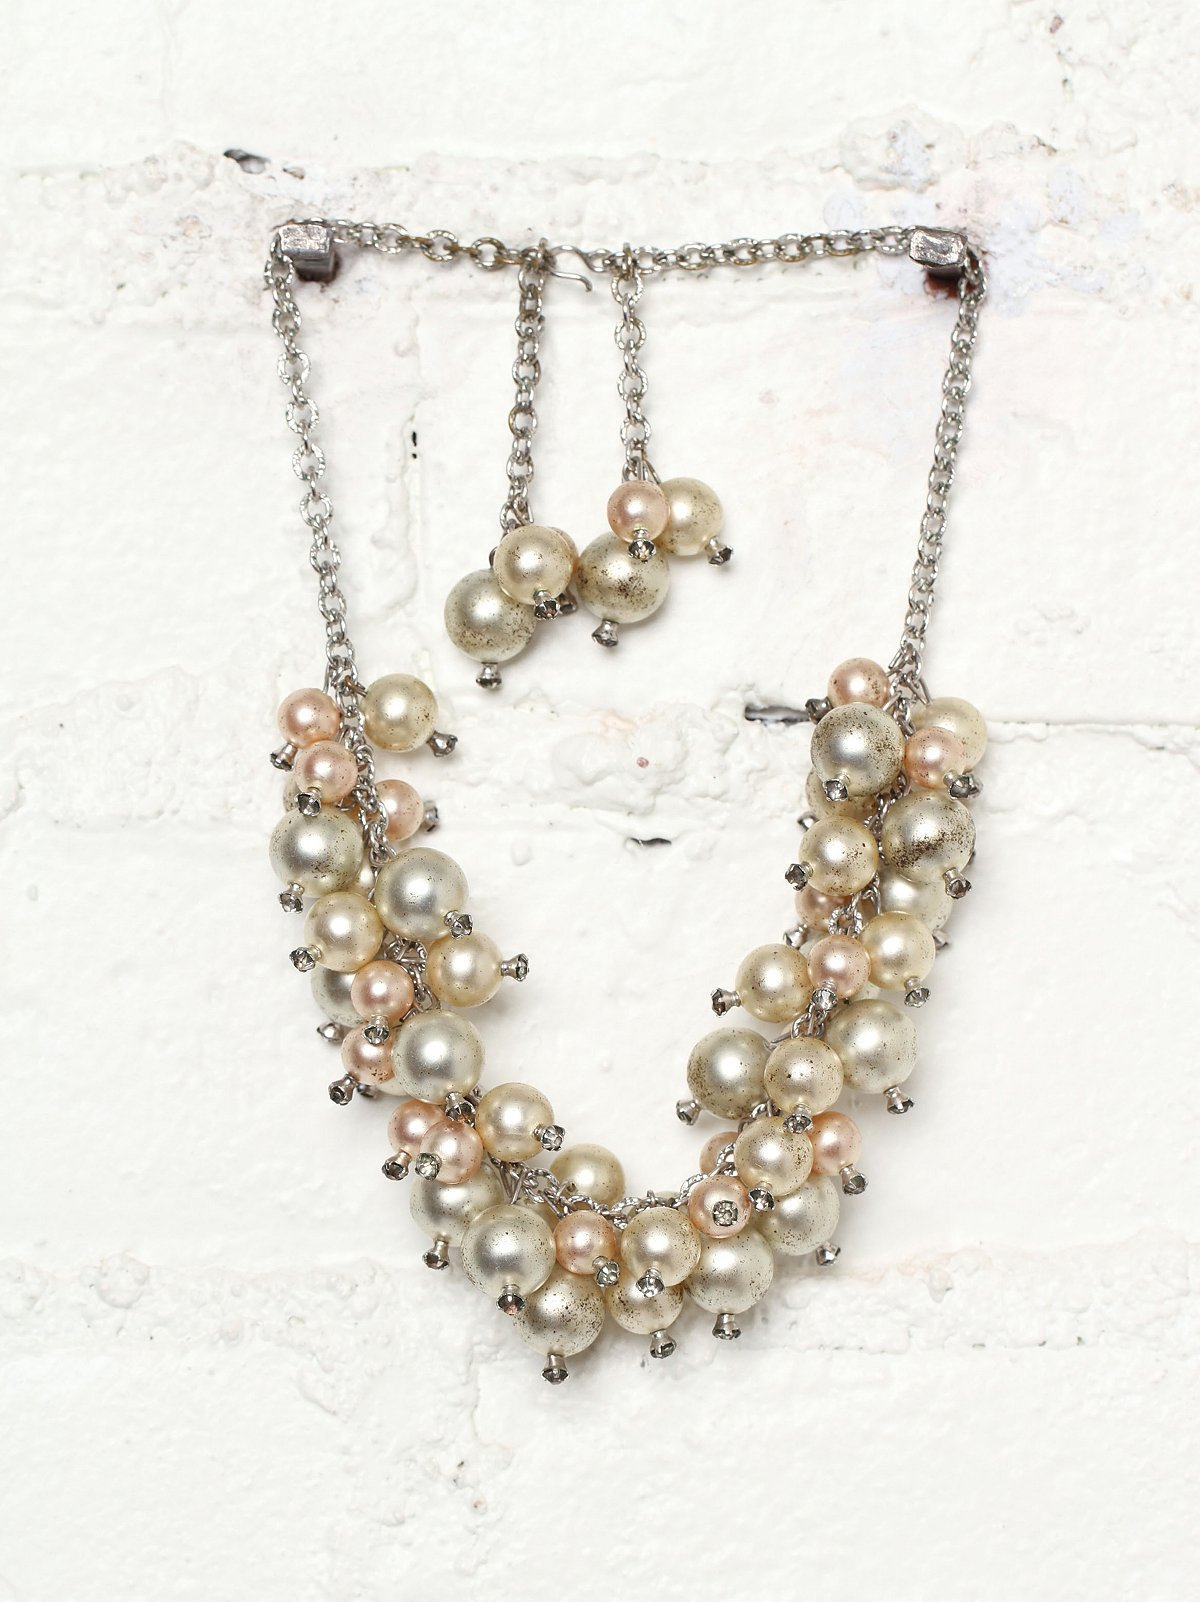 Vintage Cluster of Pearls Necklace